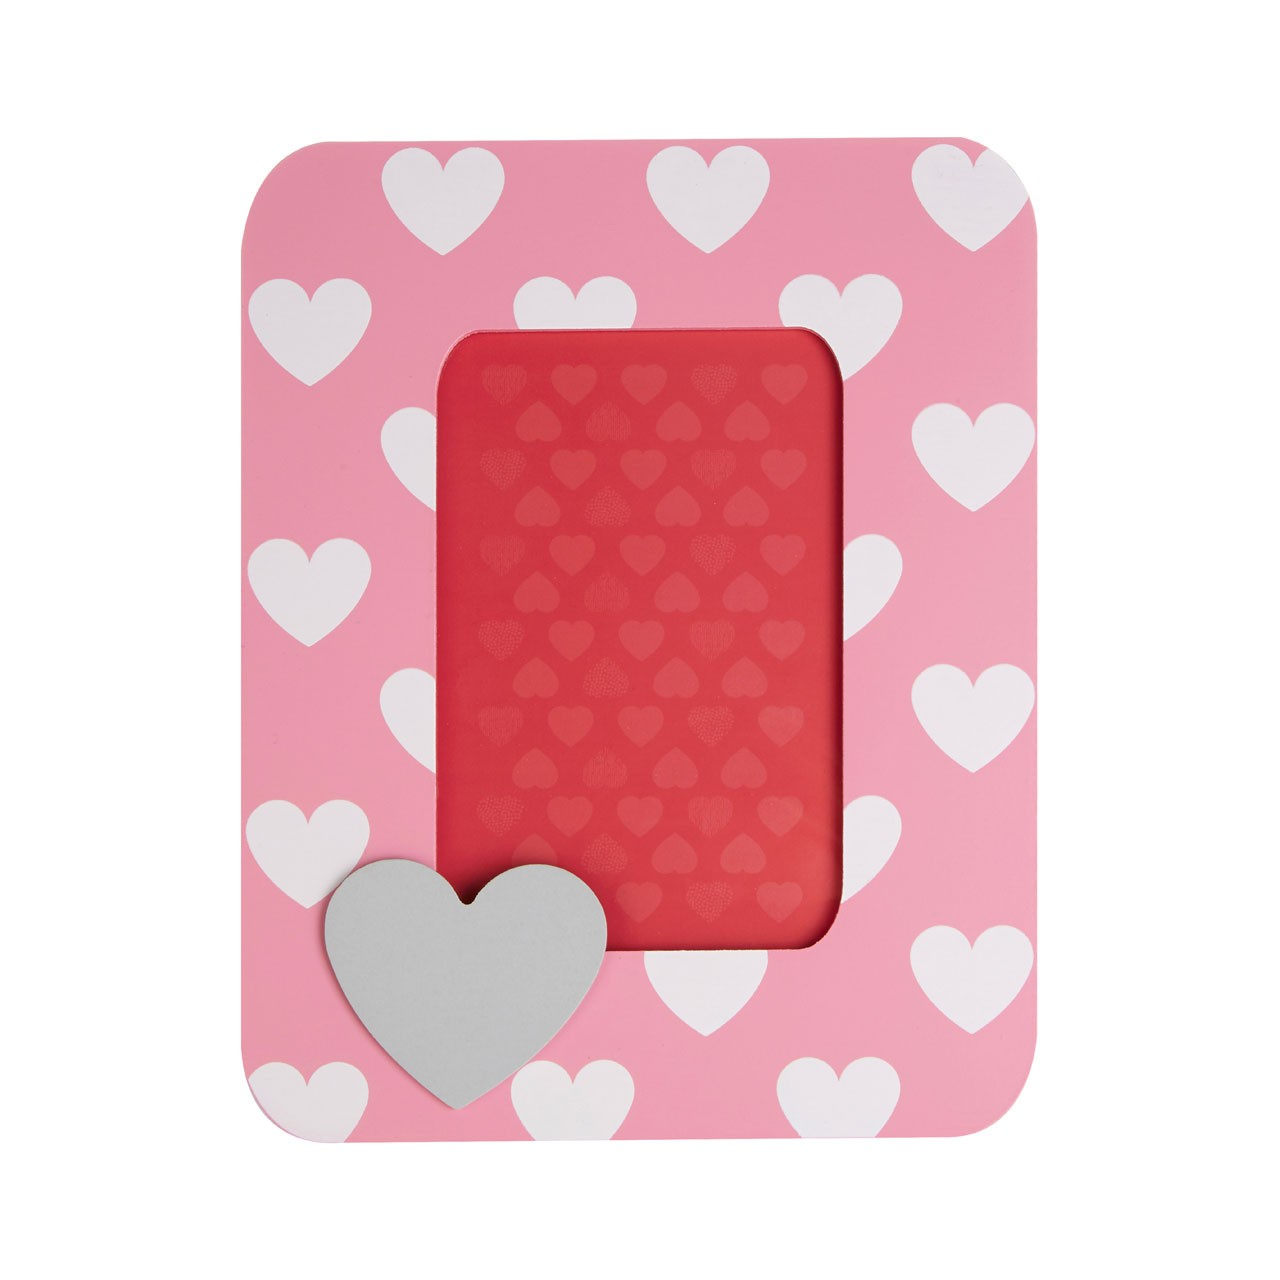 Prime Furnishing Heart Photo Frame - Pink